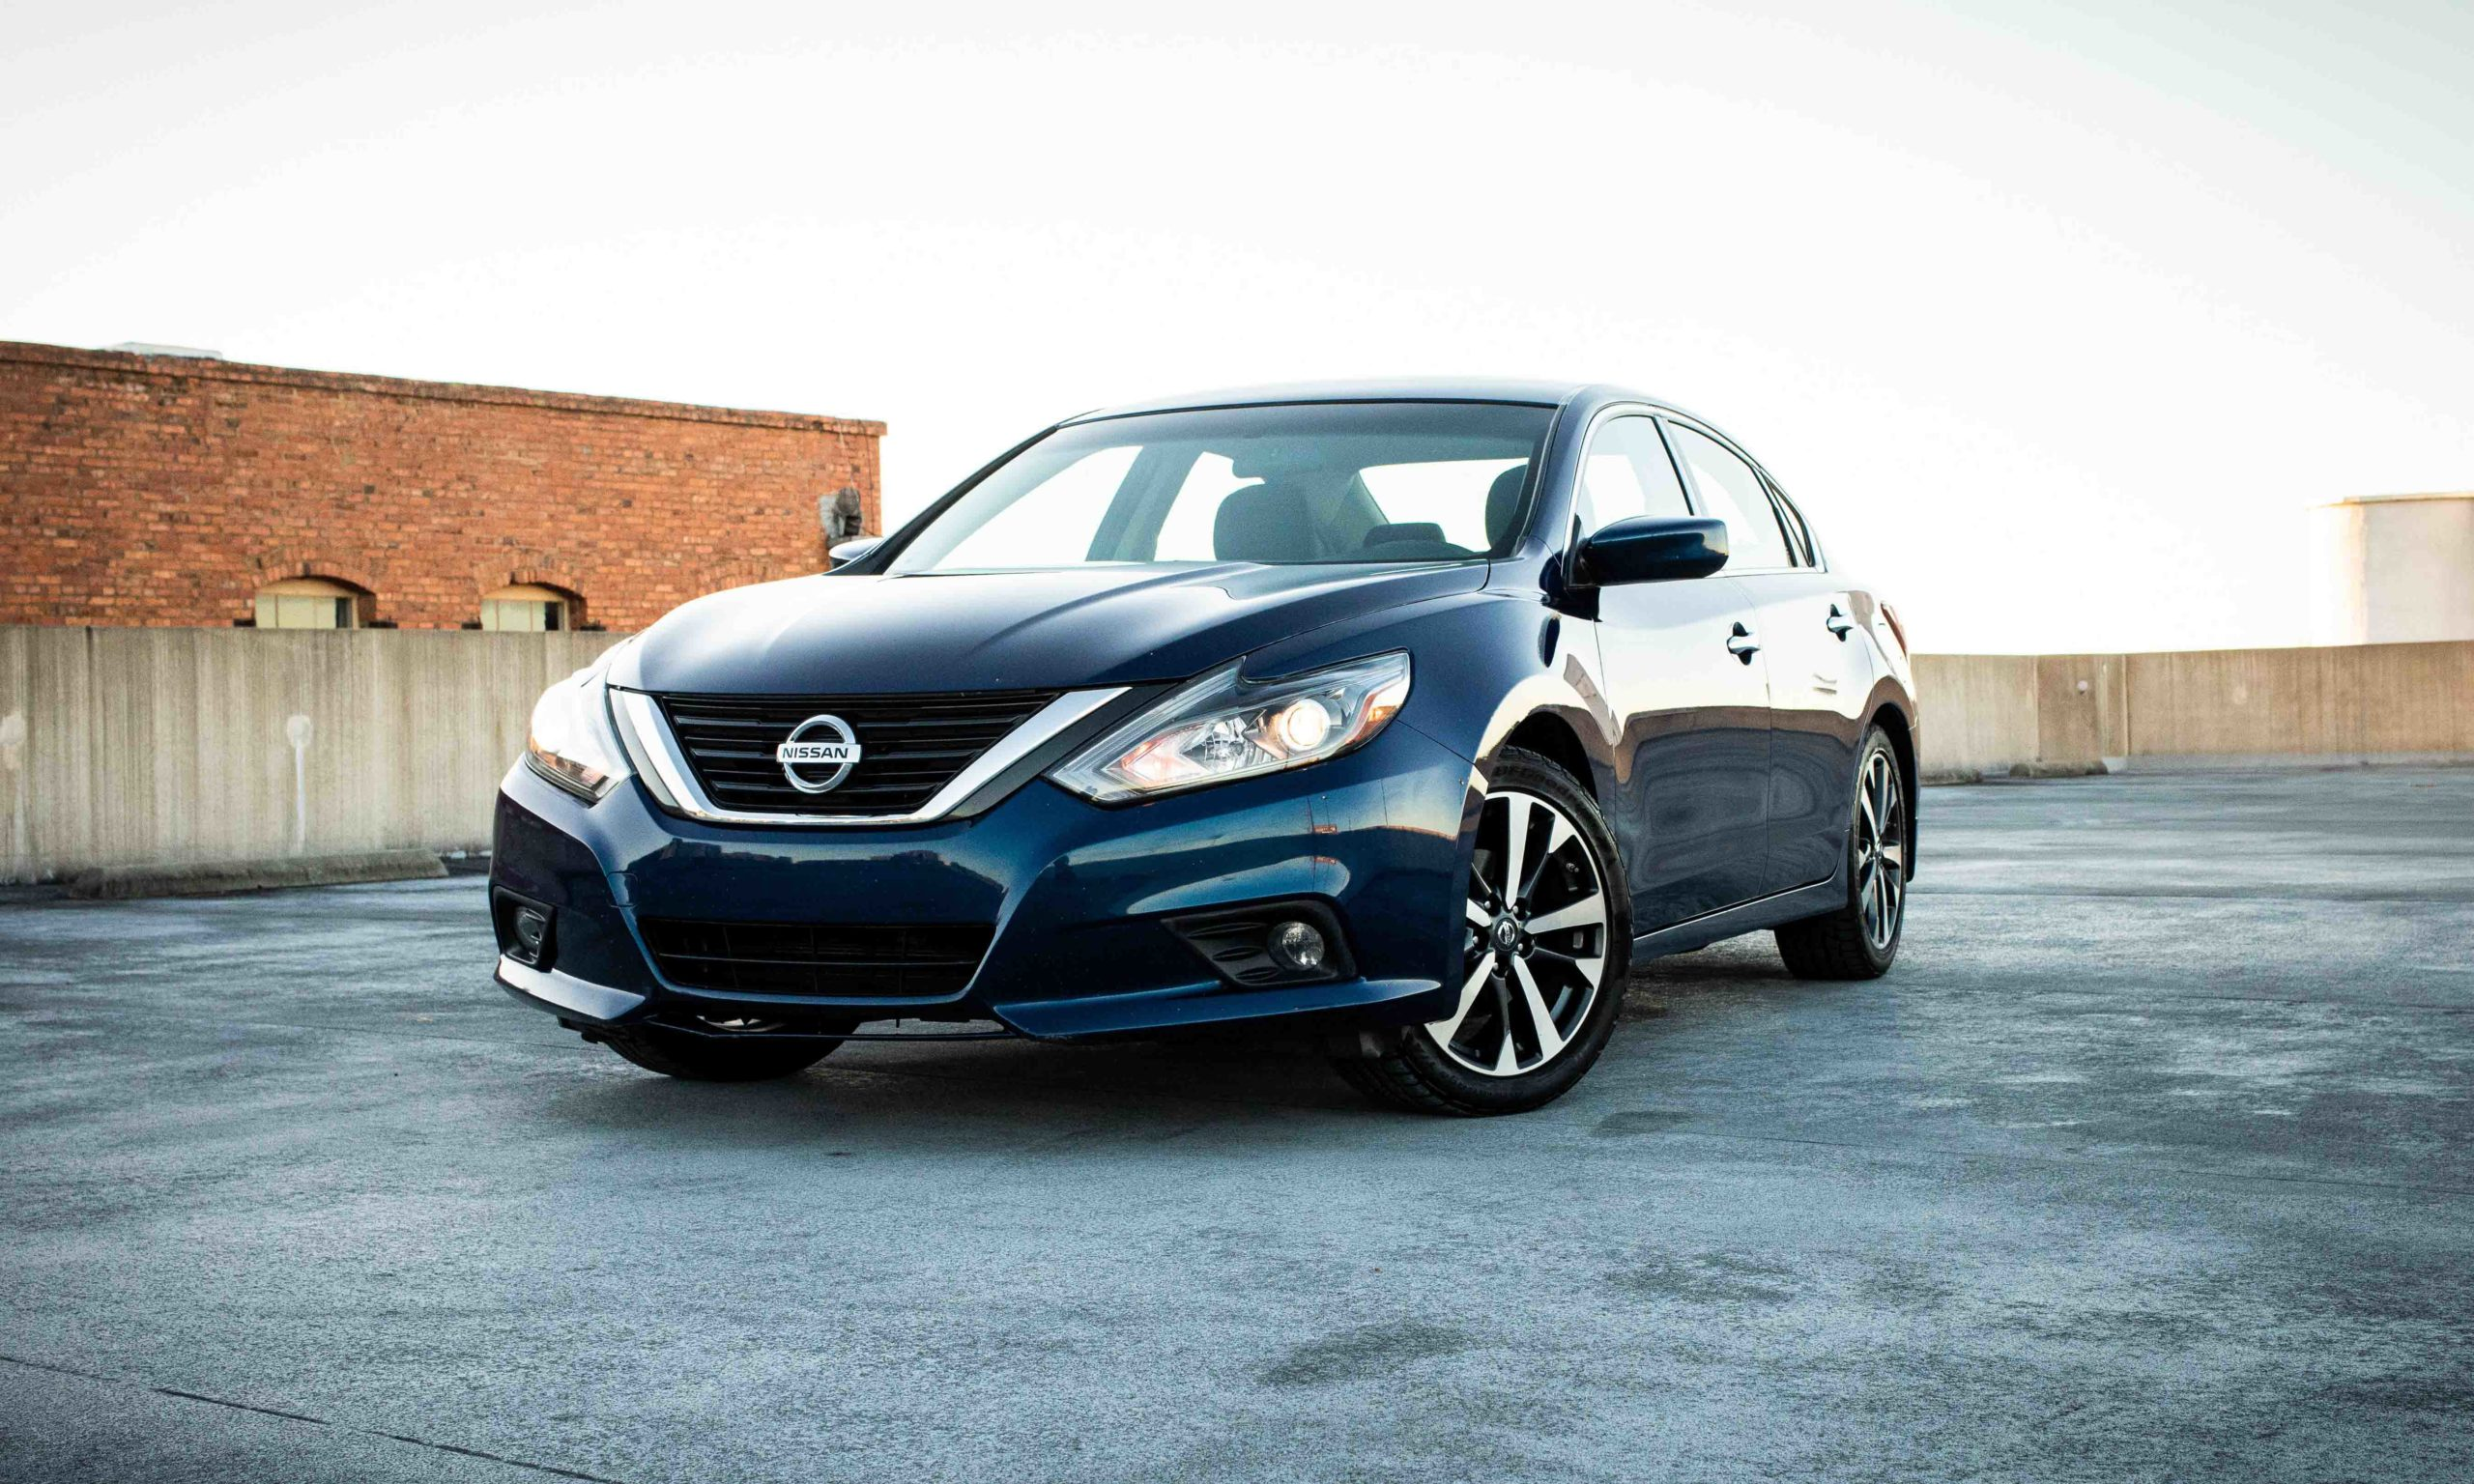 Nissan-Extended Warranty-Gold-Silver-Powertrain-Preferred-Coverage-Cost-Deductible-Extra-Benefits-Endurance-Manufacturer Cost-